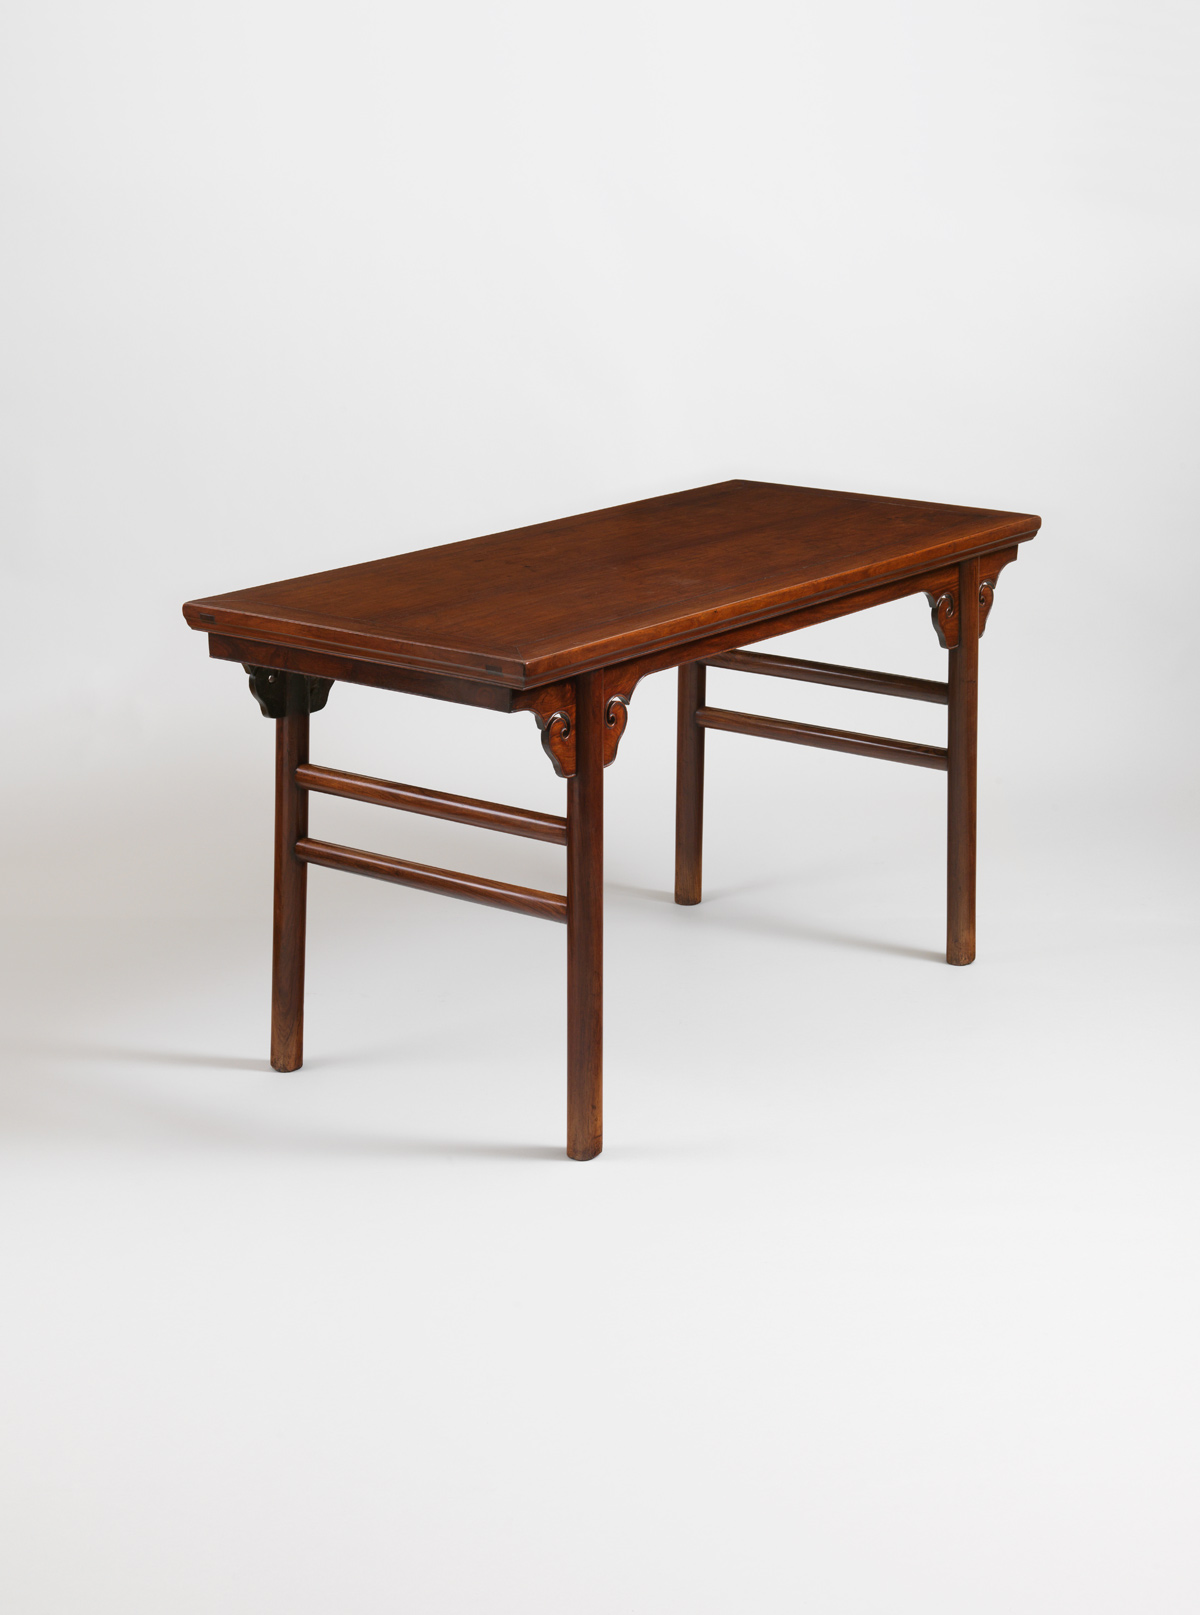 Huanghuali Table with Recessed Legs, pingtou'an